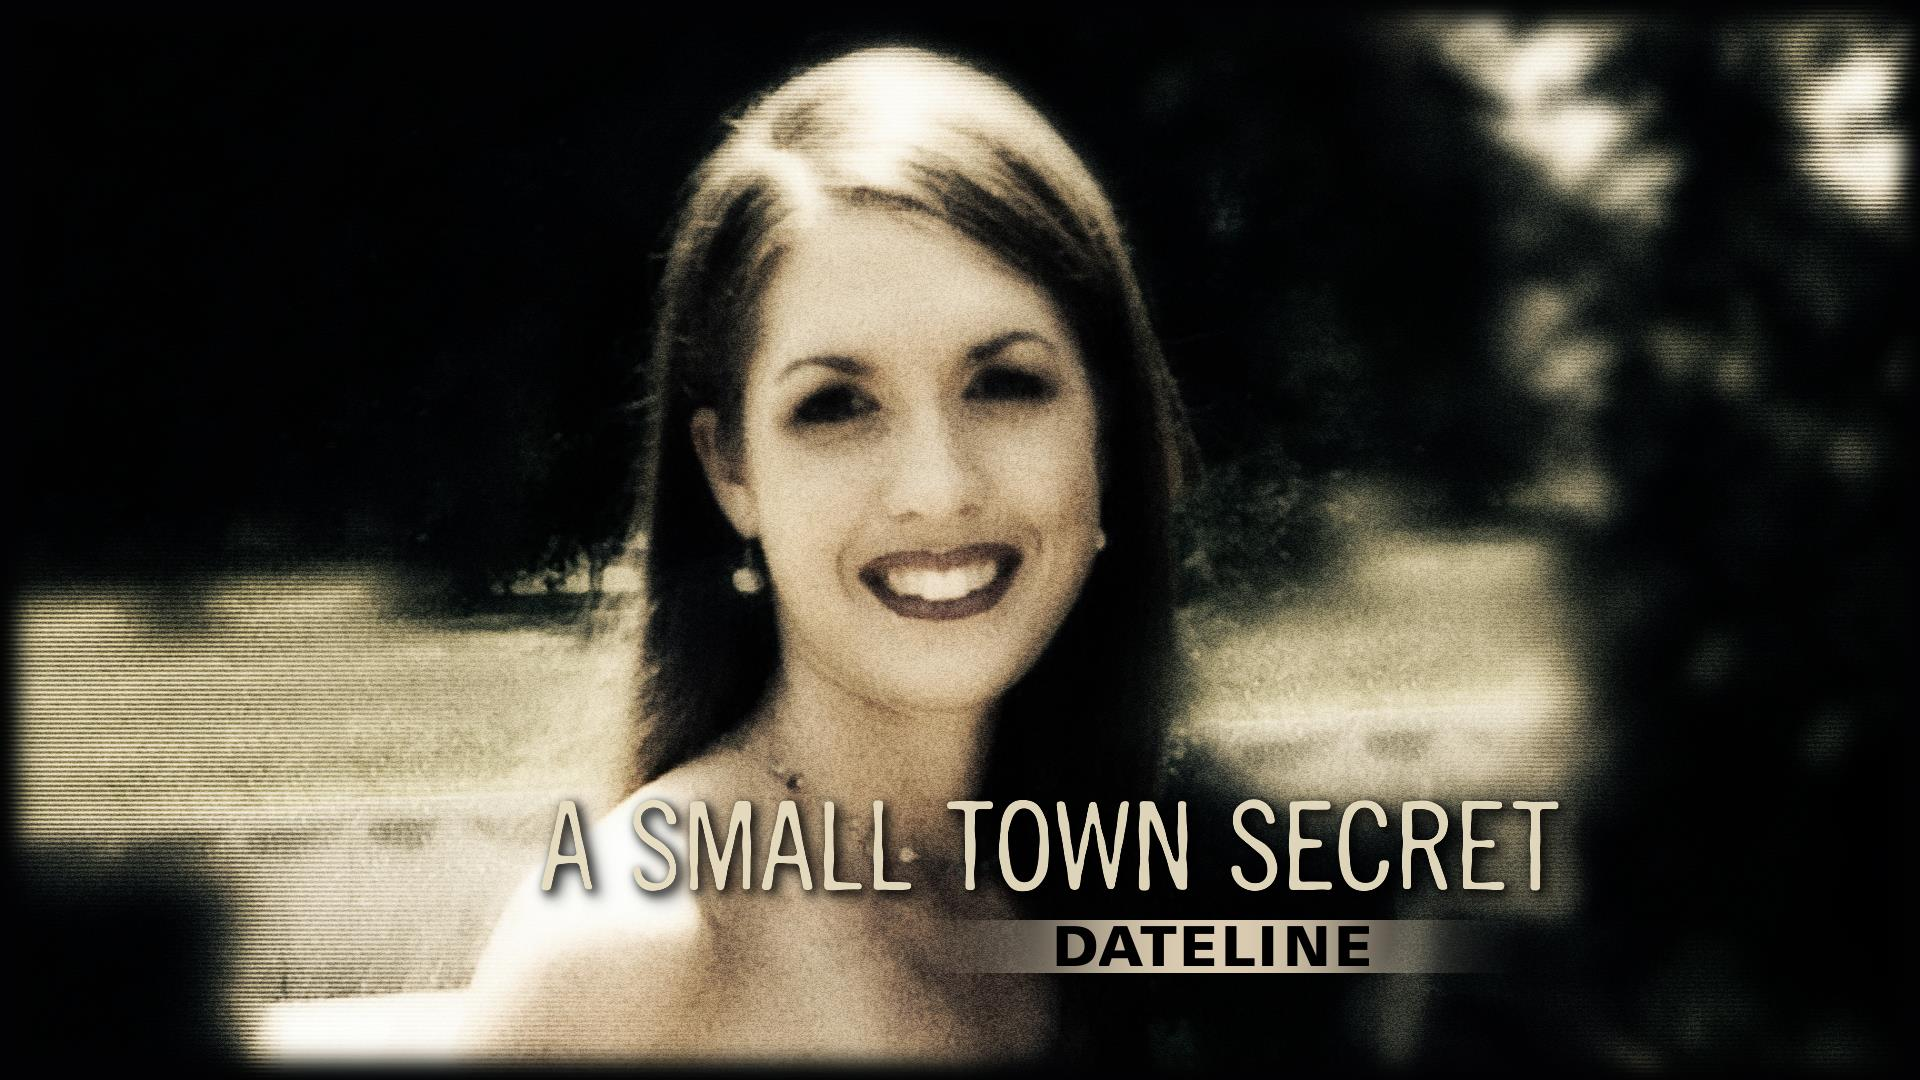 Dateline Episode Preview: A Small Town Secret